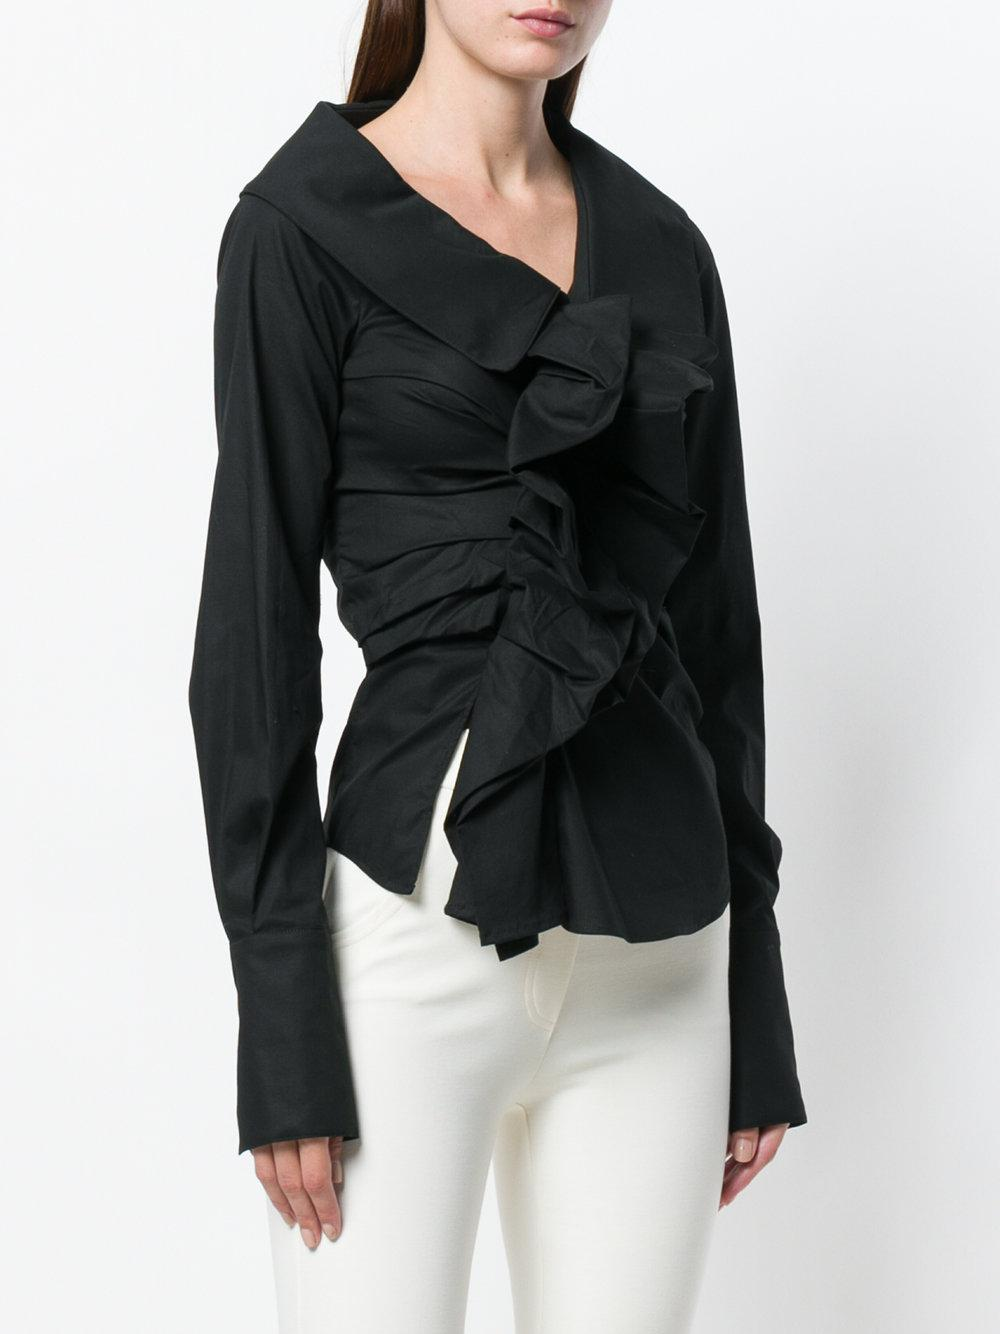 Cheap Price In China Low Shipping Fee Cheap Price ruched blouse - Black Plein Sud 4Uy9e